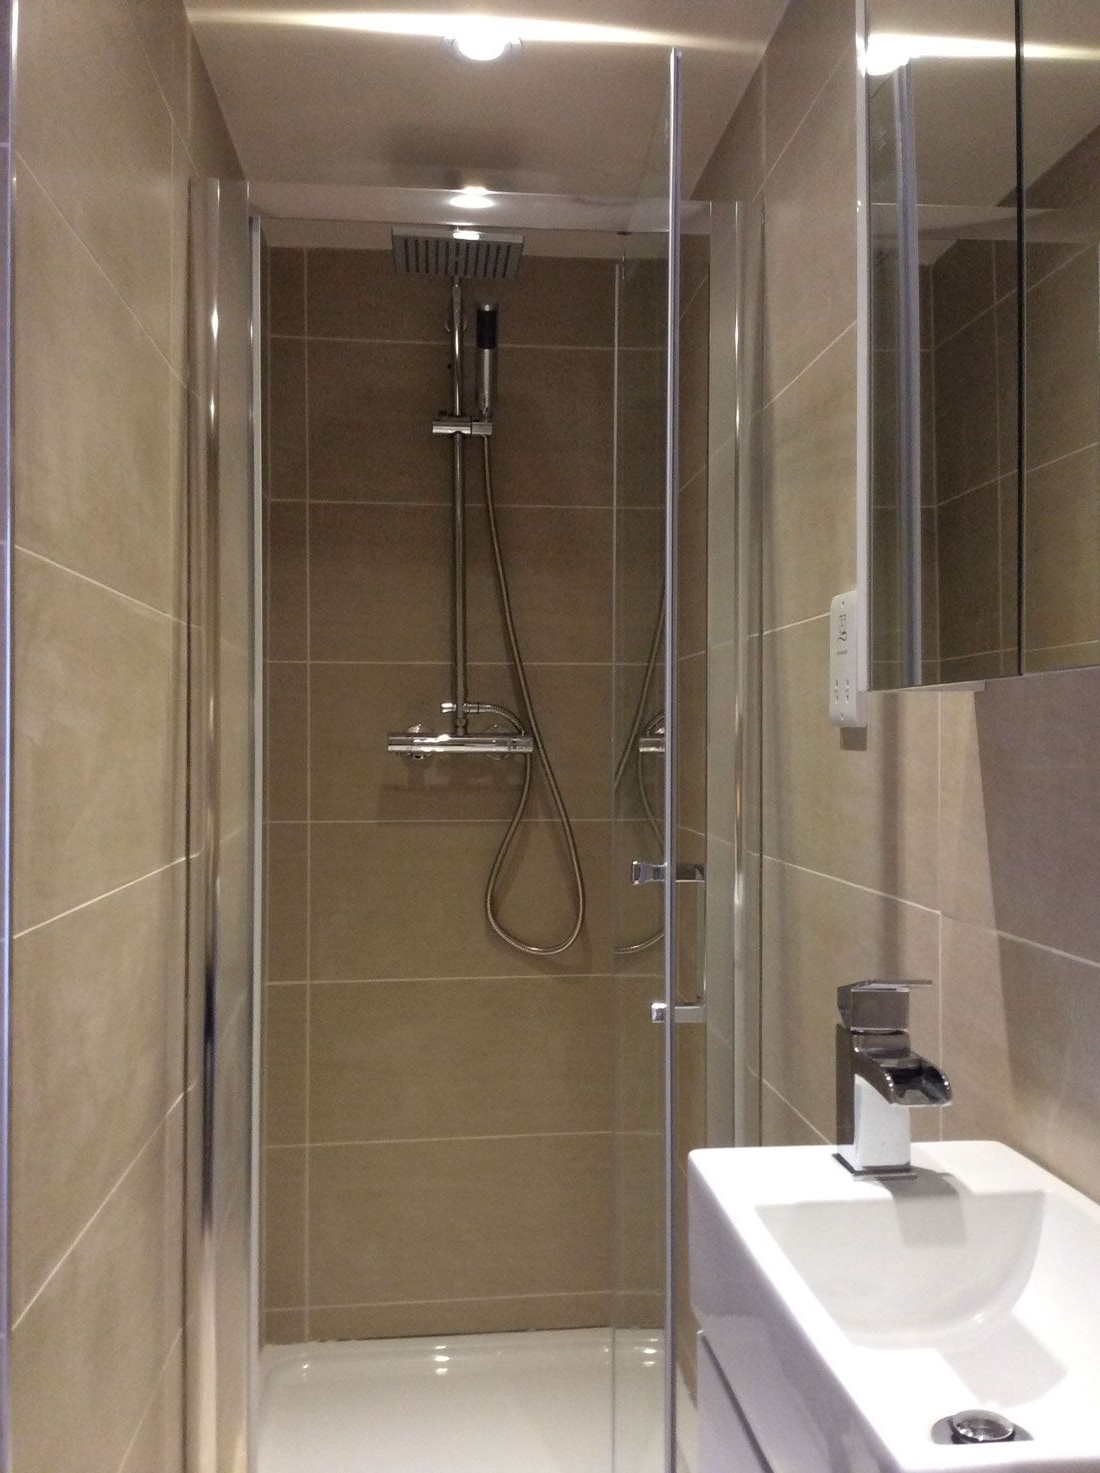 Image Result For Smallest Ensuite | Small Shower Room 30+ Compact Ensuite Bathroom Designs Ideas